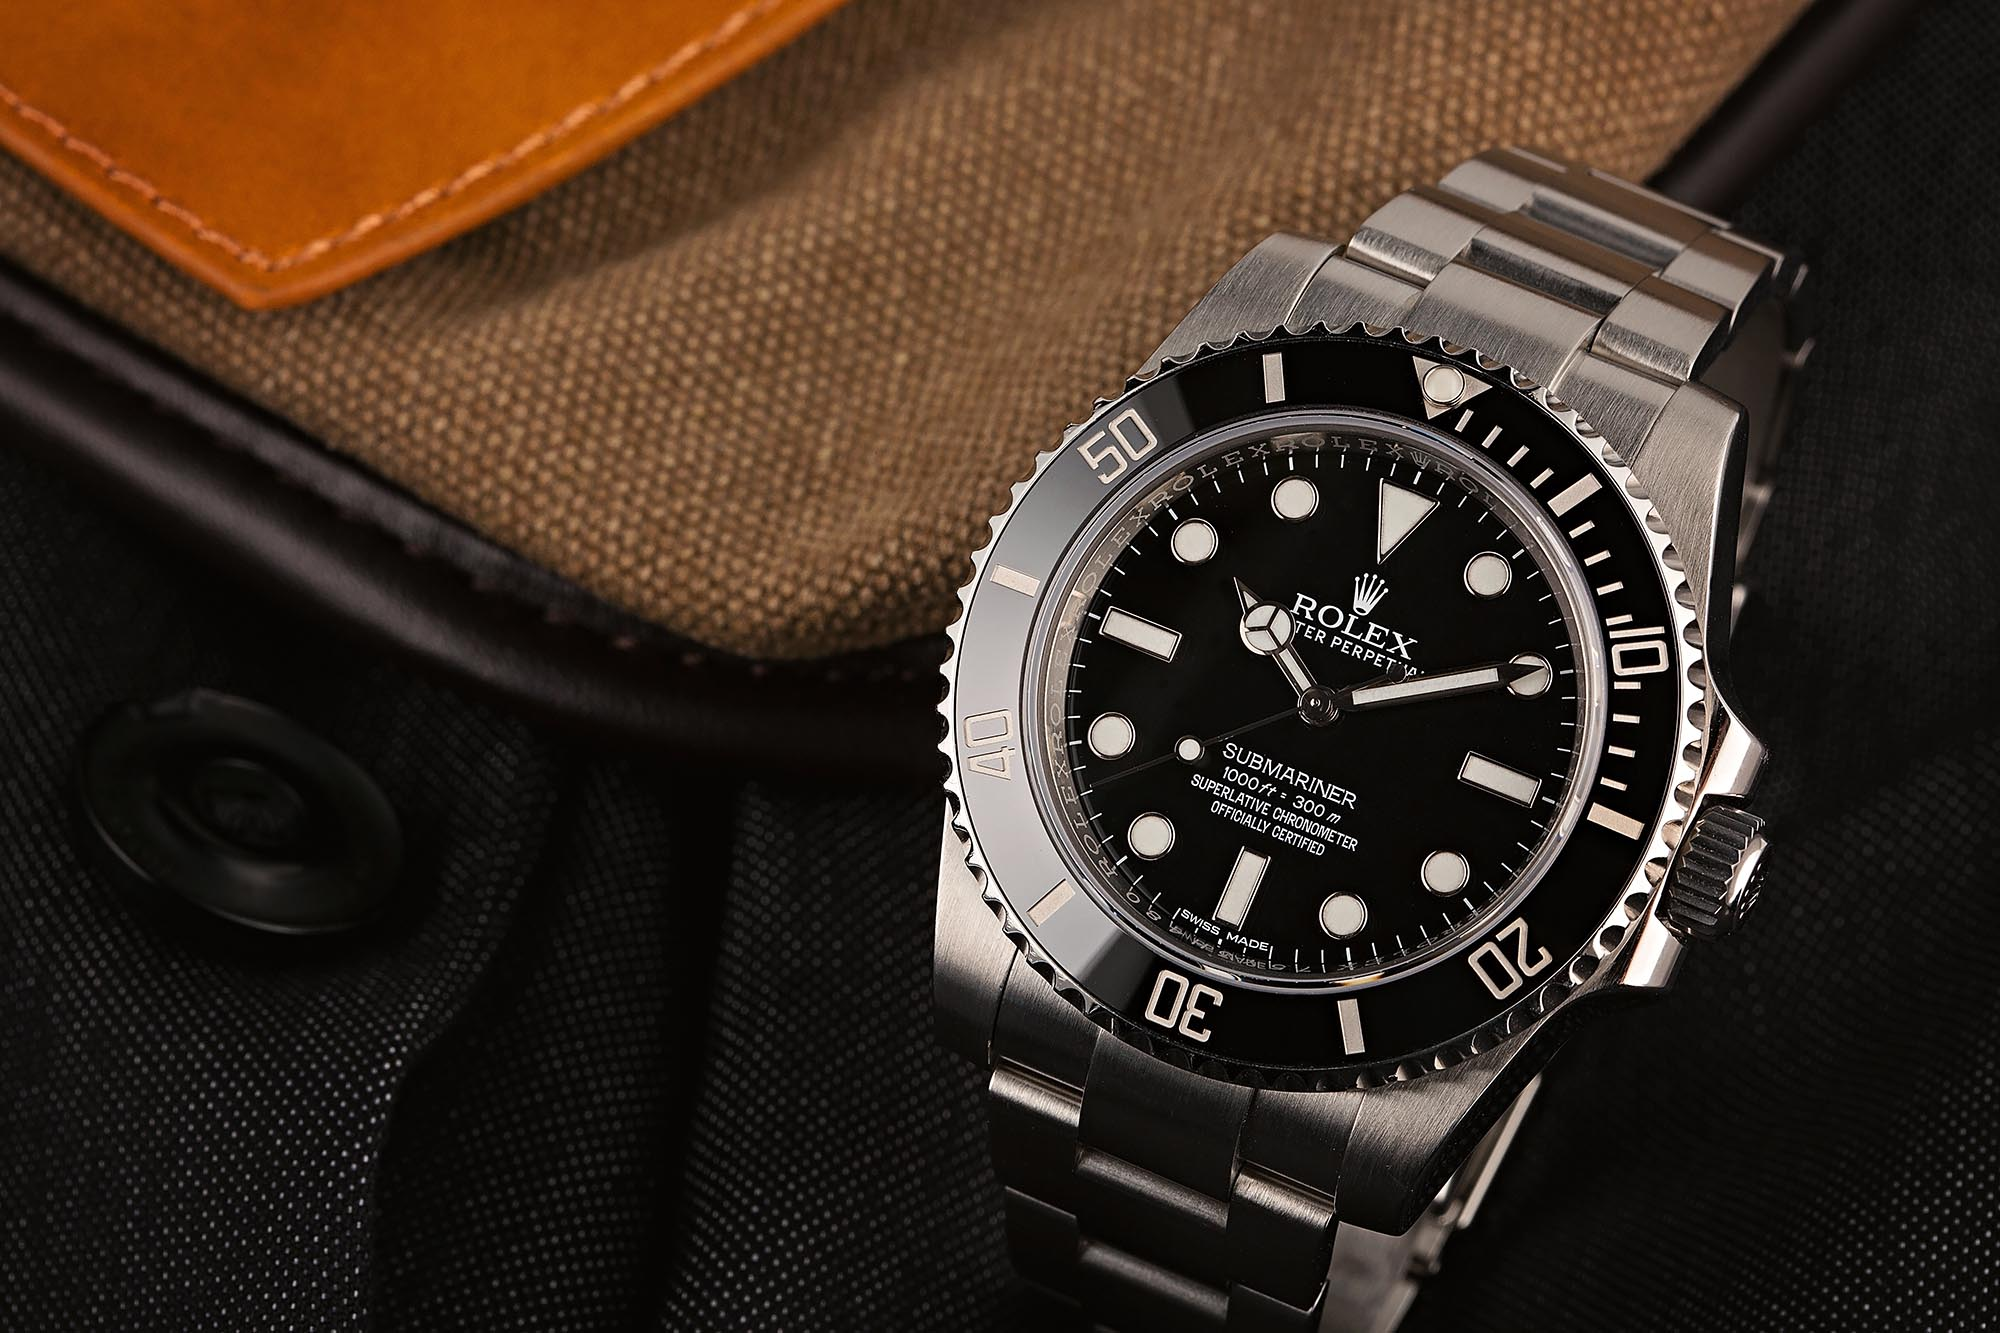 Rolex Submariner 5513 Price Information